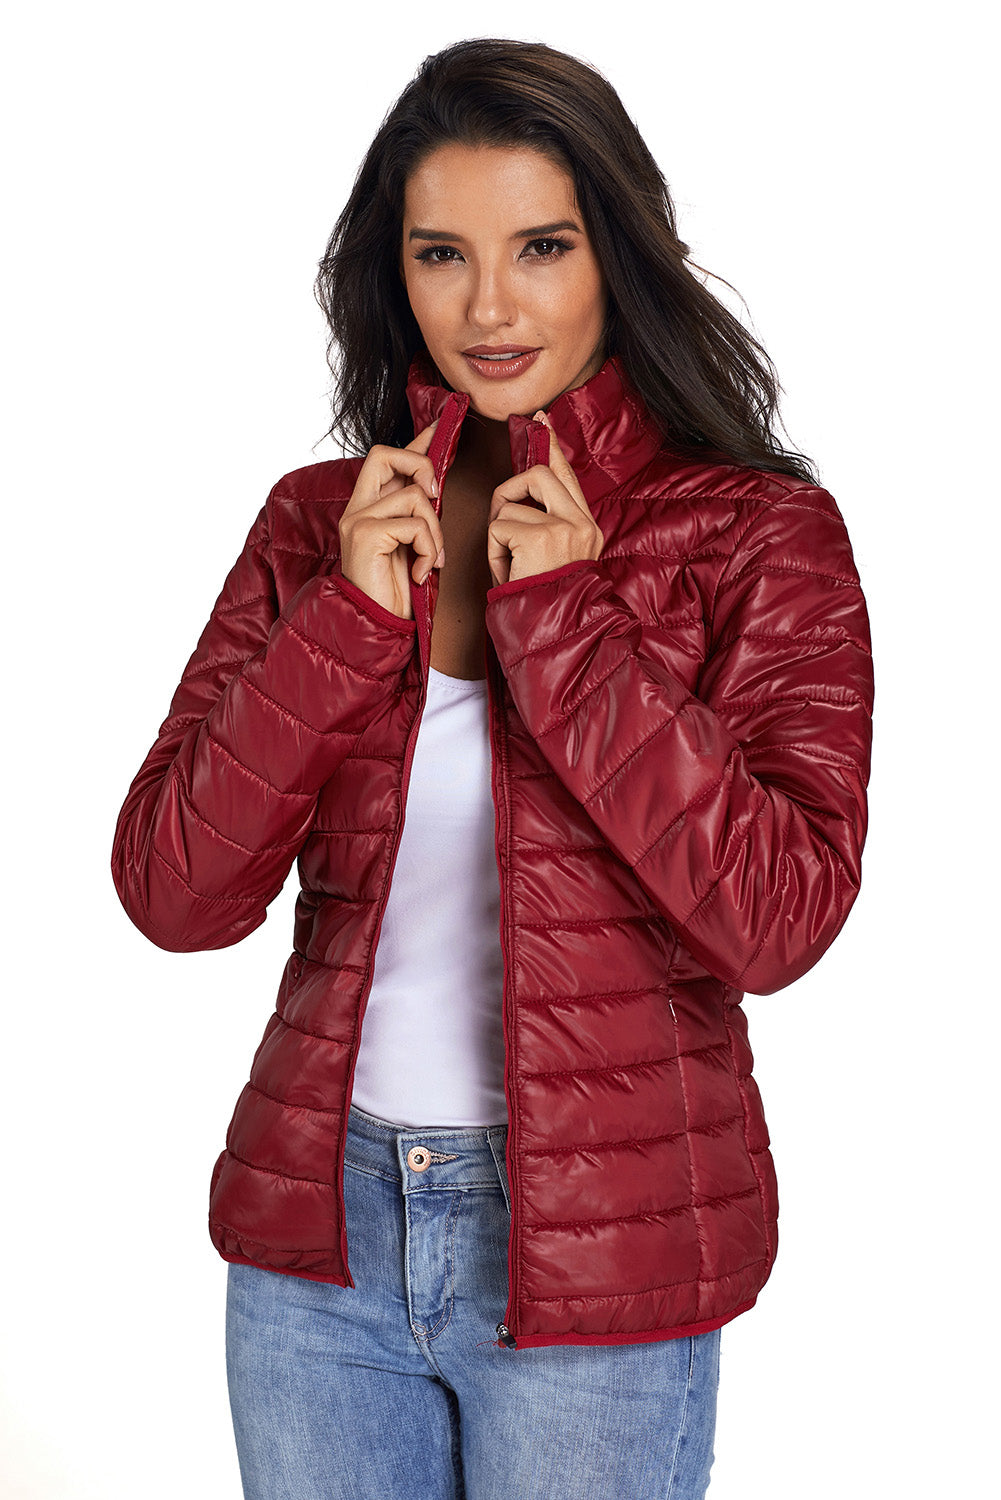 Her Fashion Khaki High Neck Quilted Cotton Women Jacket